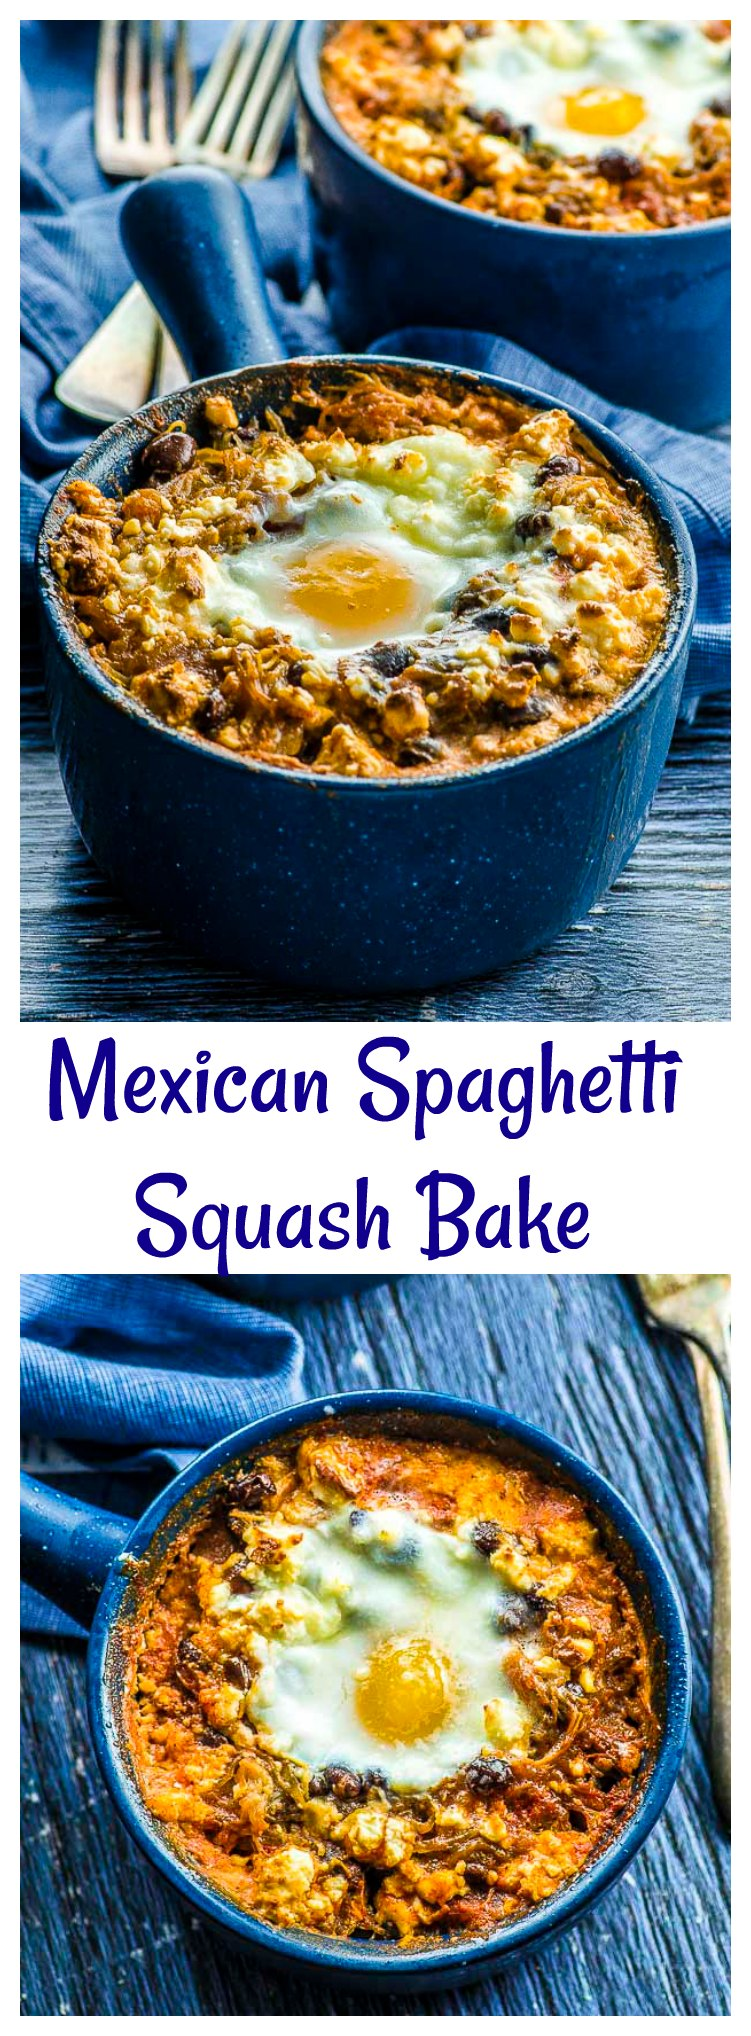 Here's a super easy Tex-Mex Spaghetti Squash Bake that only requires a few ingredients and is bursting with flavor. A complete and balanced meal that can be easily made vegan!